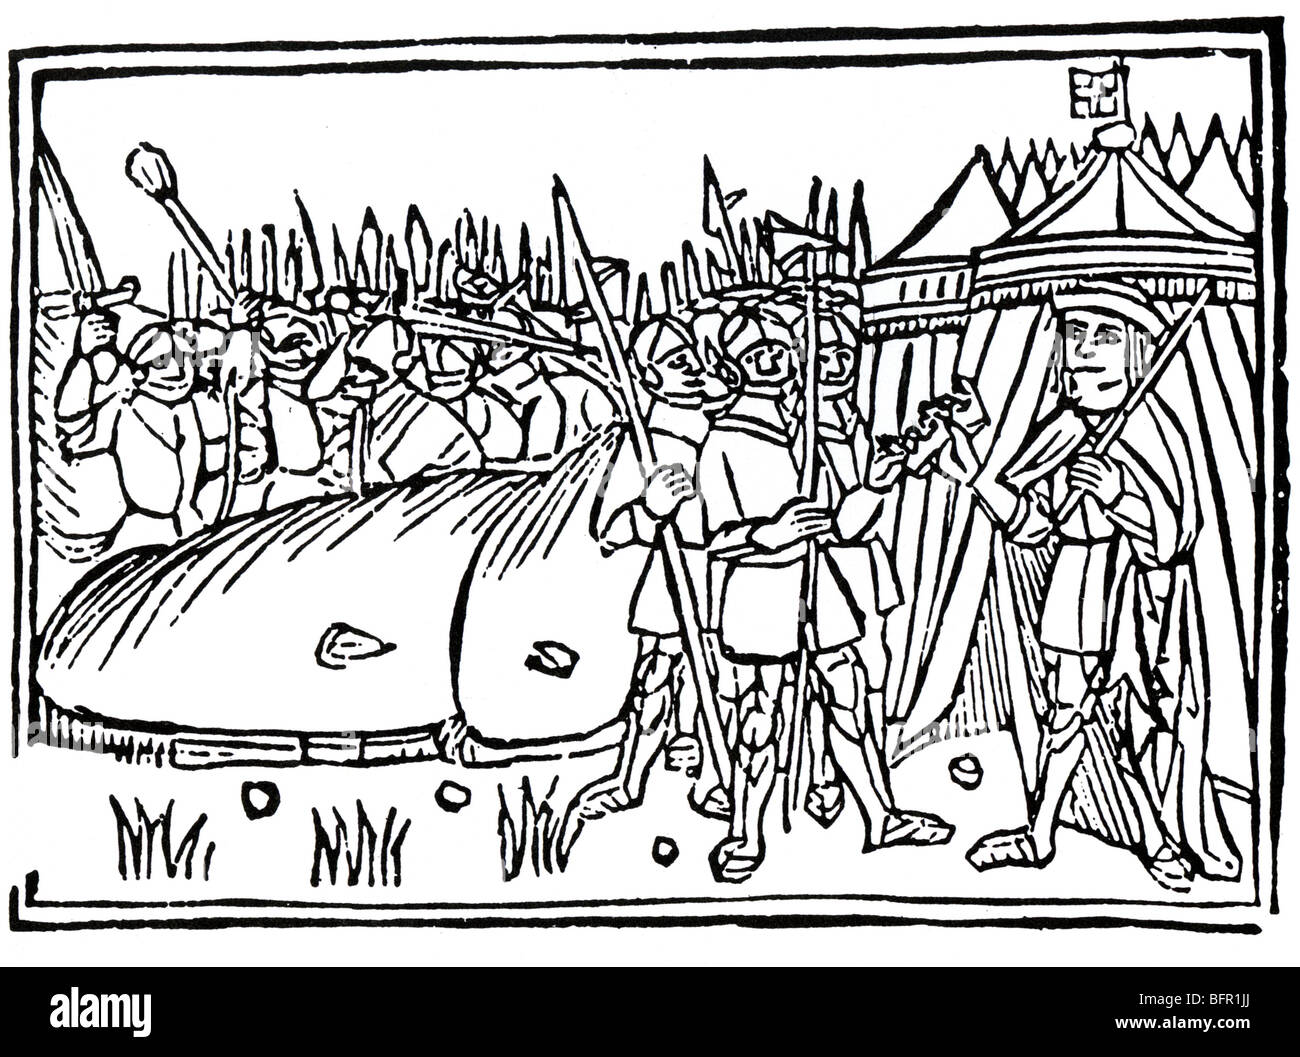 BATTLE OF FLODDEN FIELD 1513- Contemporary illustration shows King James IV ceding his crown after being defeated - Stock Image